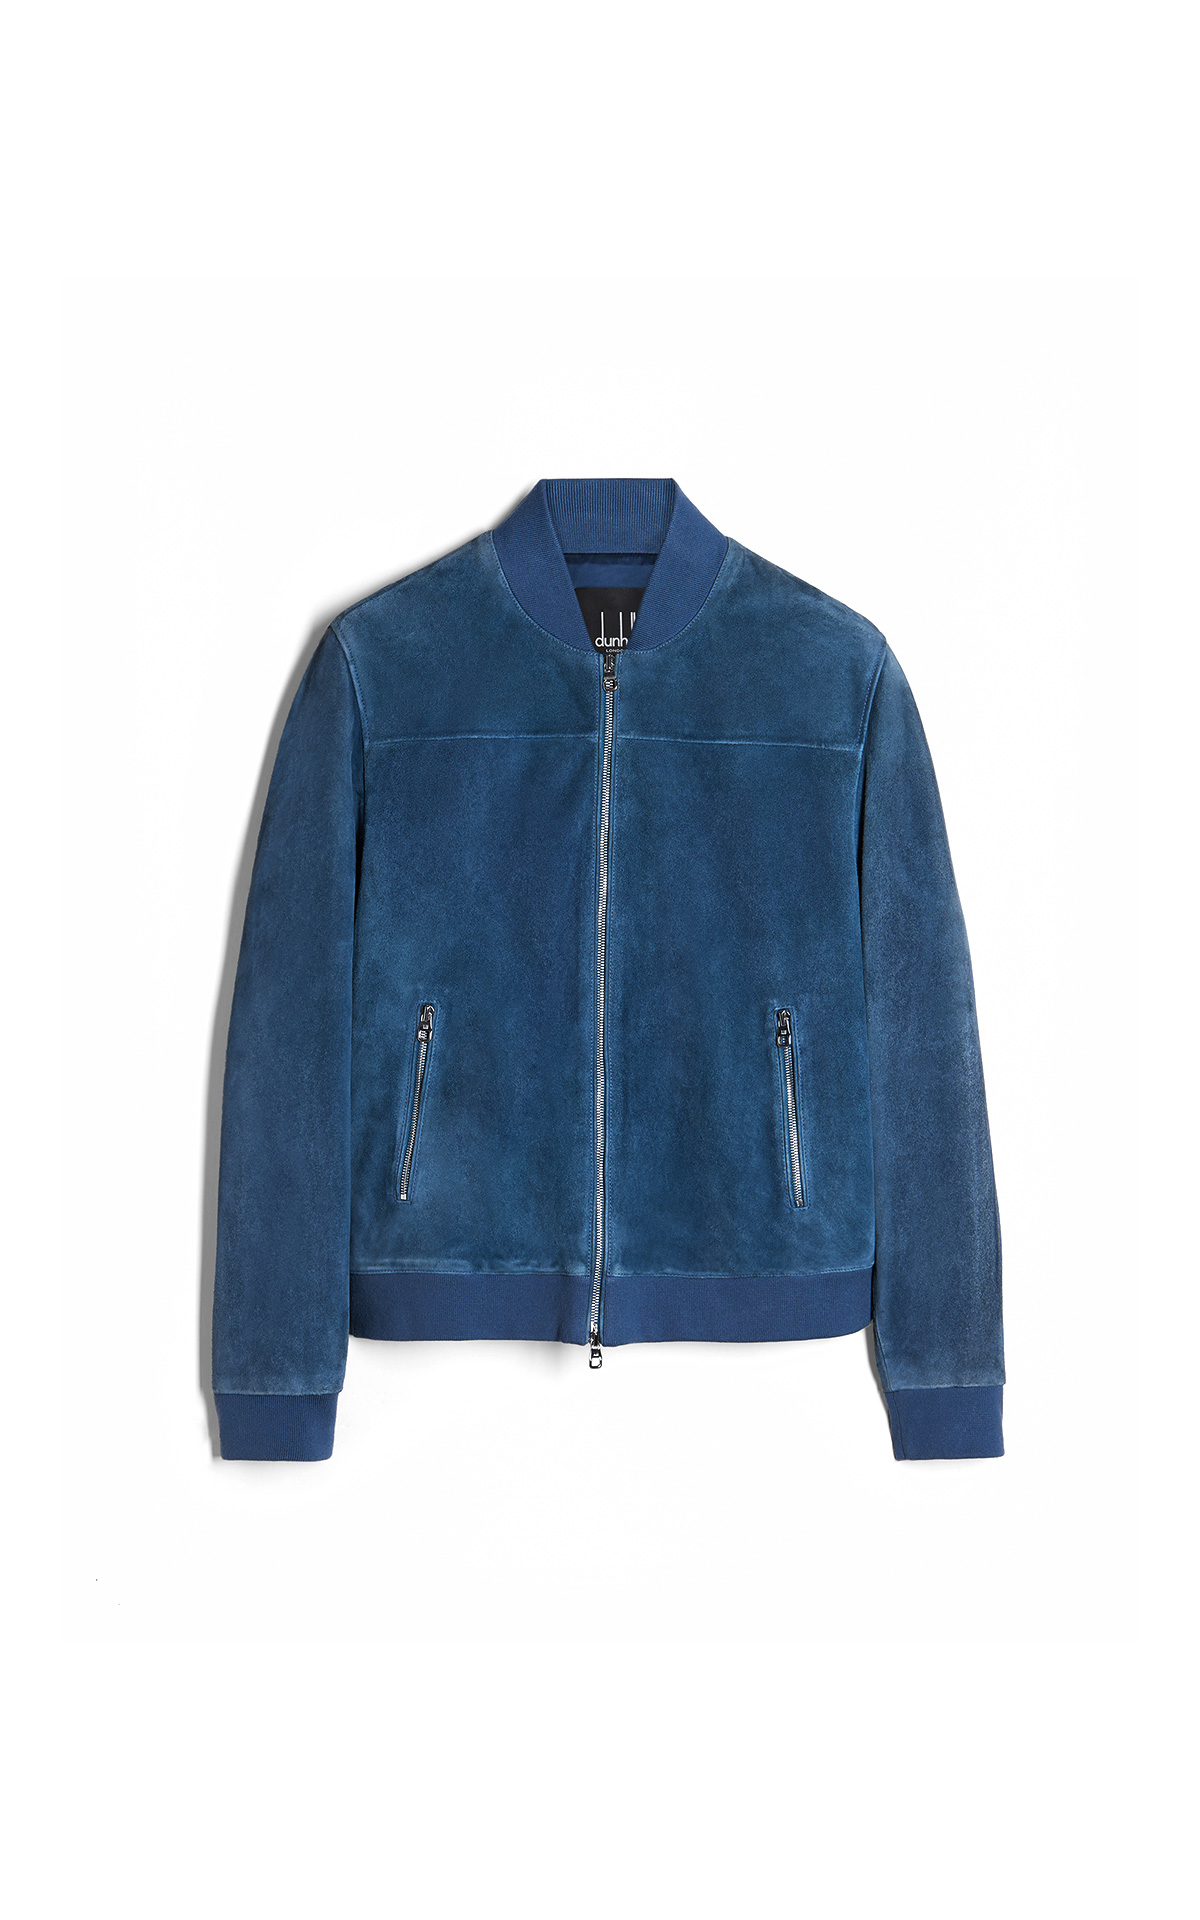 dunhill Blue suede jacket | La Vallée Village